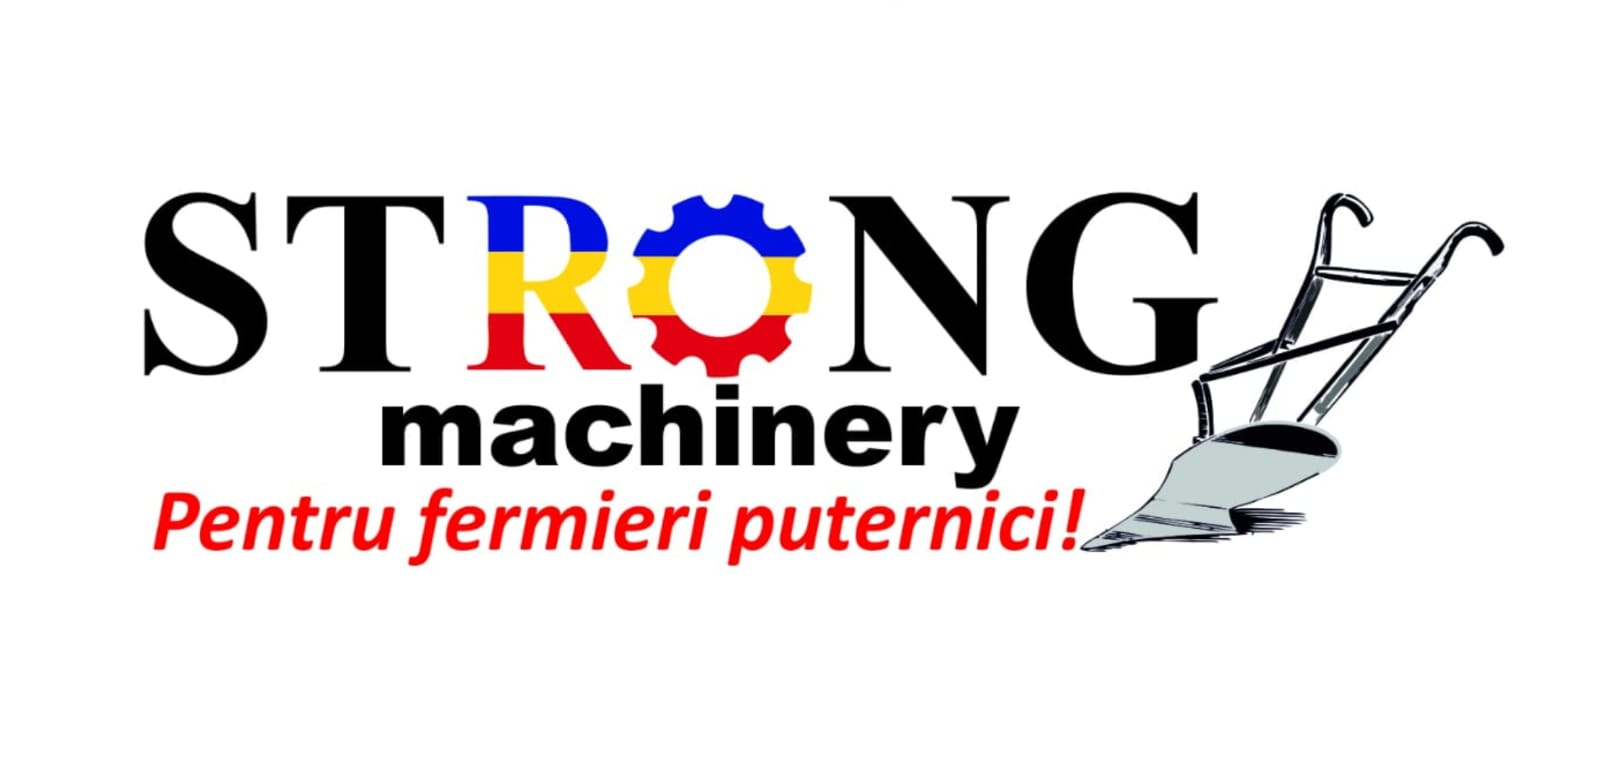 STRONG machinery